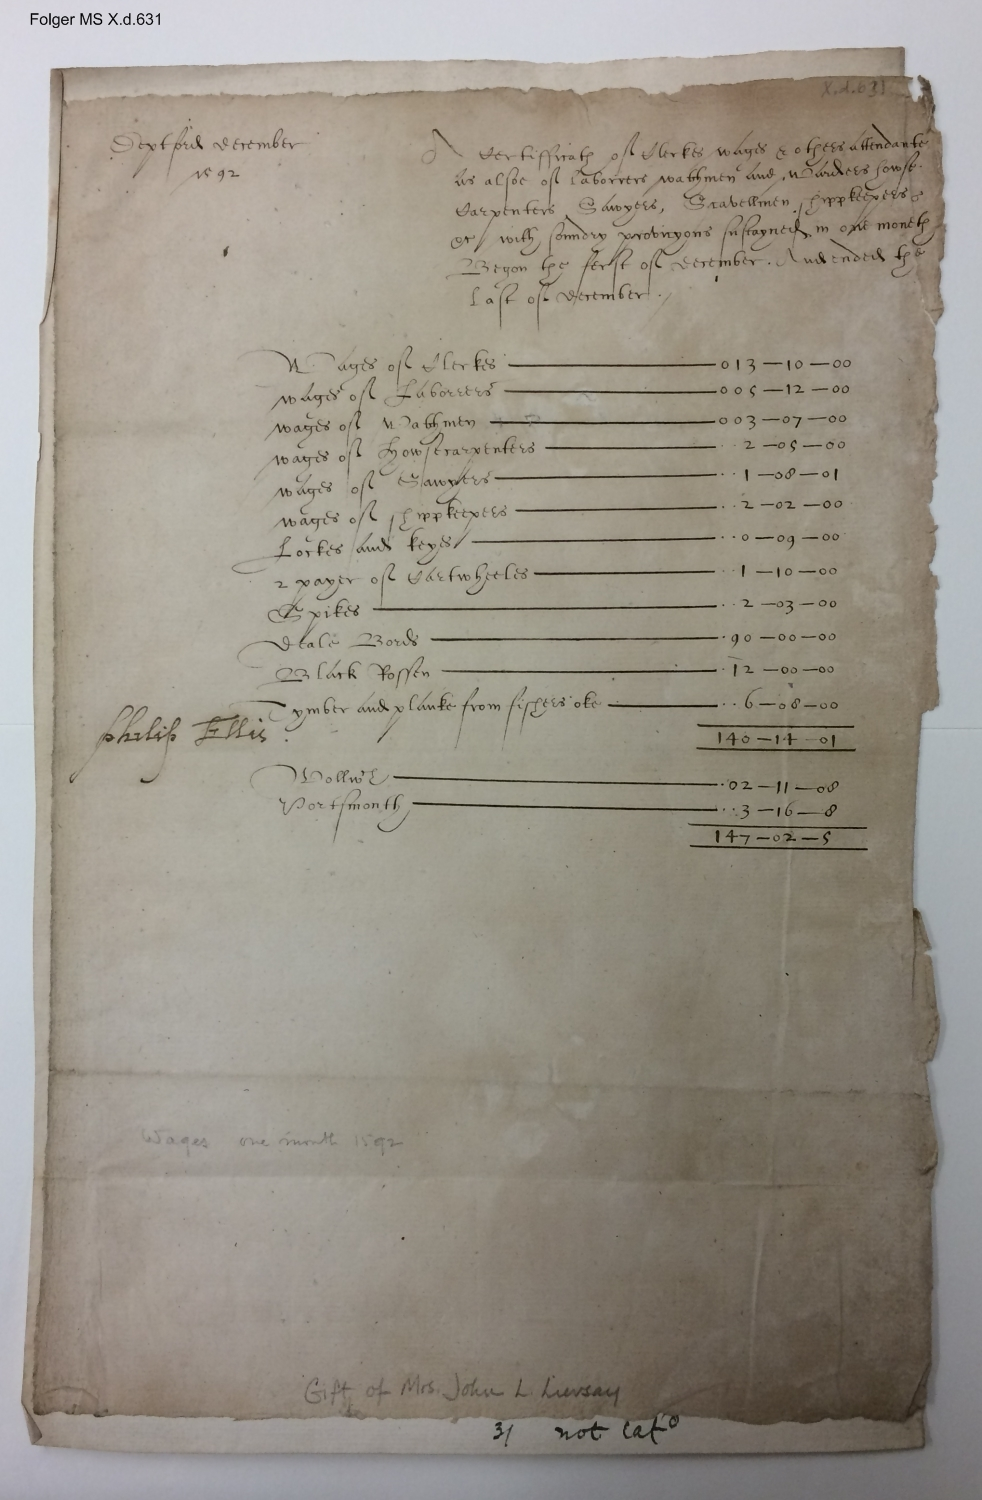 Account of wages and sundry provisions for December 1592, Deptford [manuscript], 1592 December?